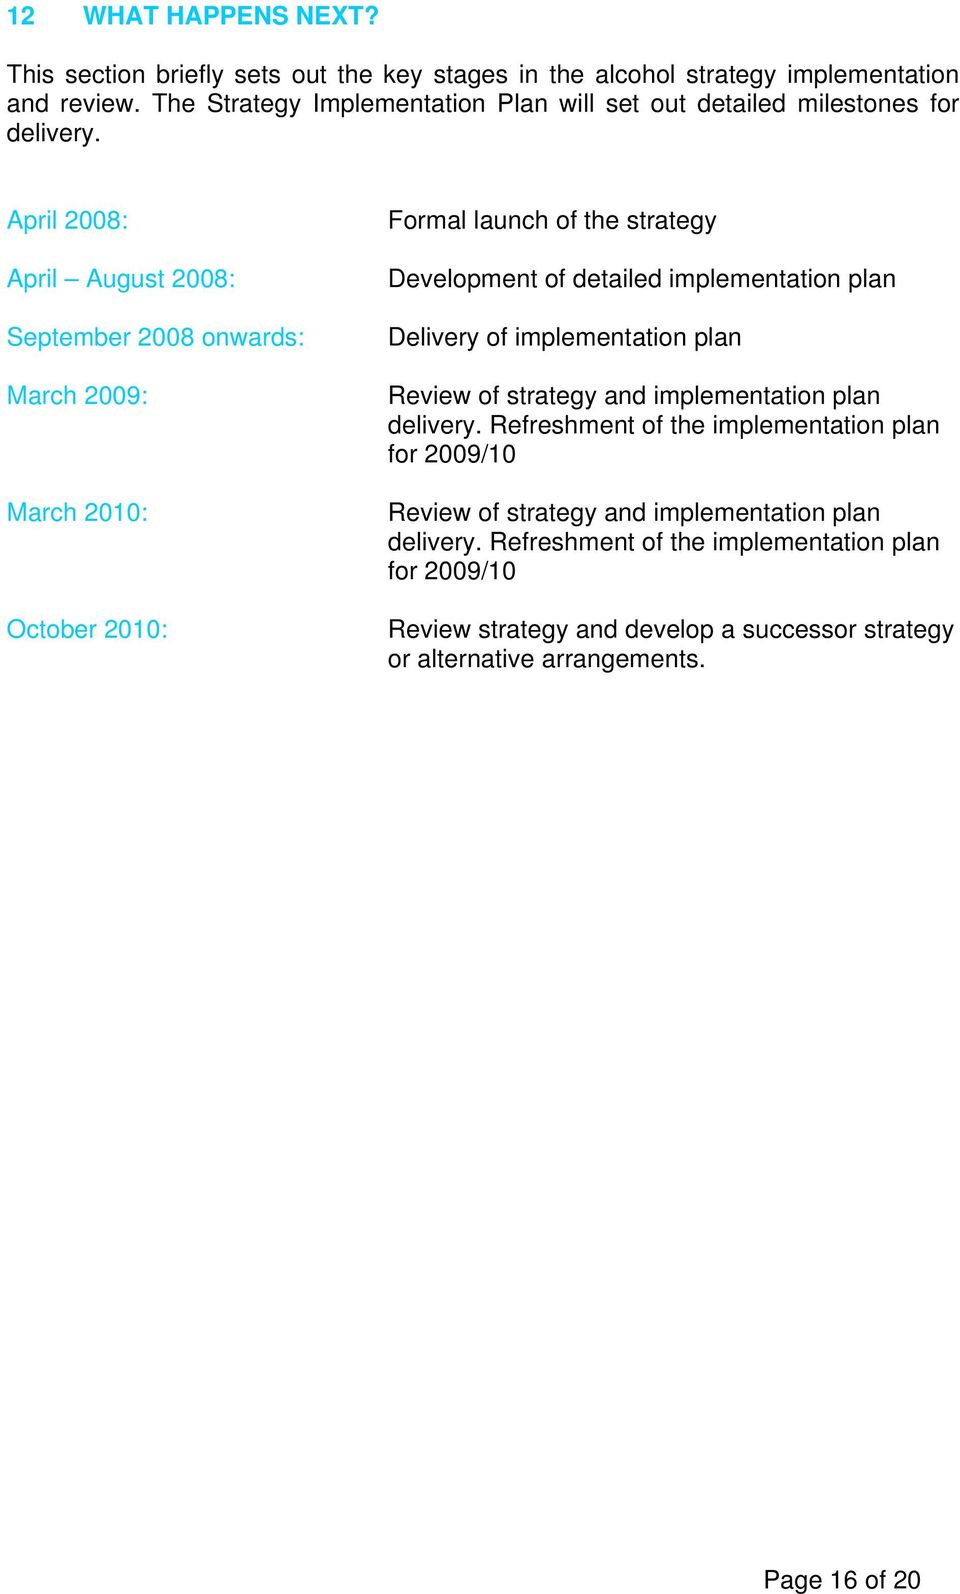 April 2008: April August 2008: September 2008 onwards: March 2009: March 2010: October 2010: Formal launch of the strategy Development of detailed implementation plan